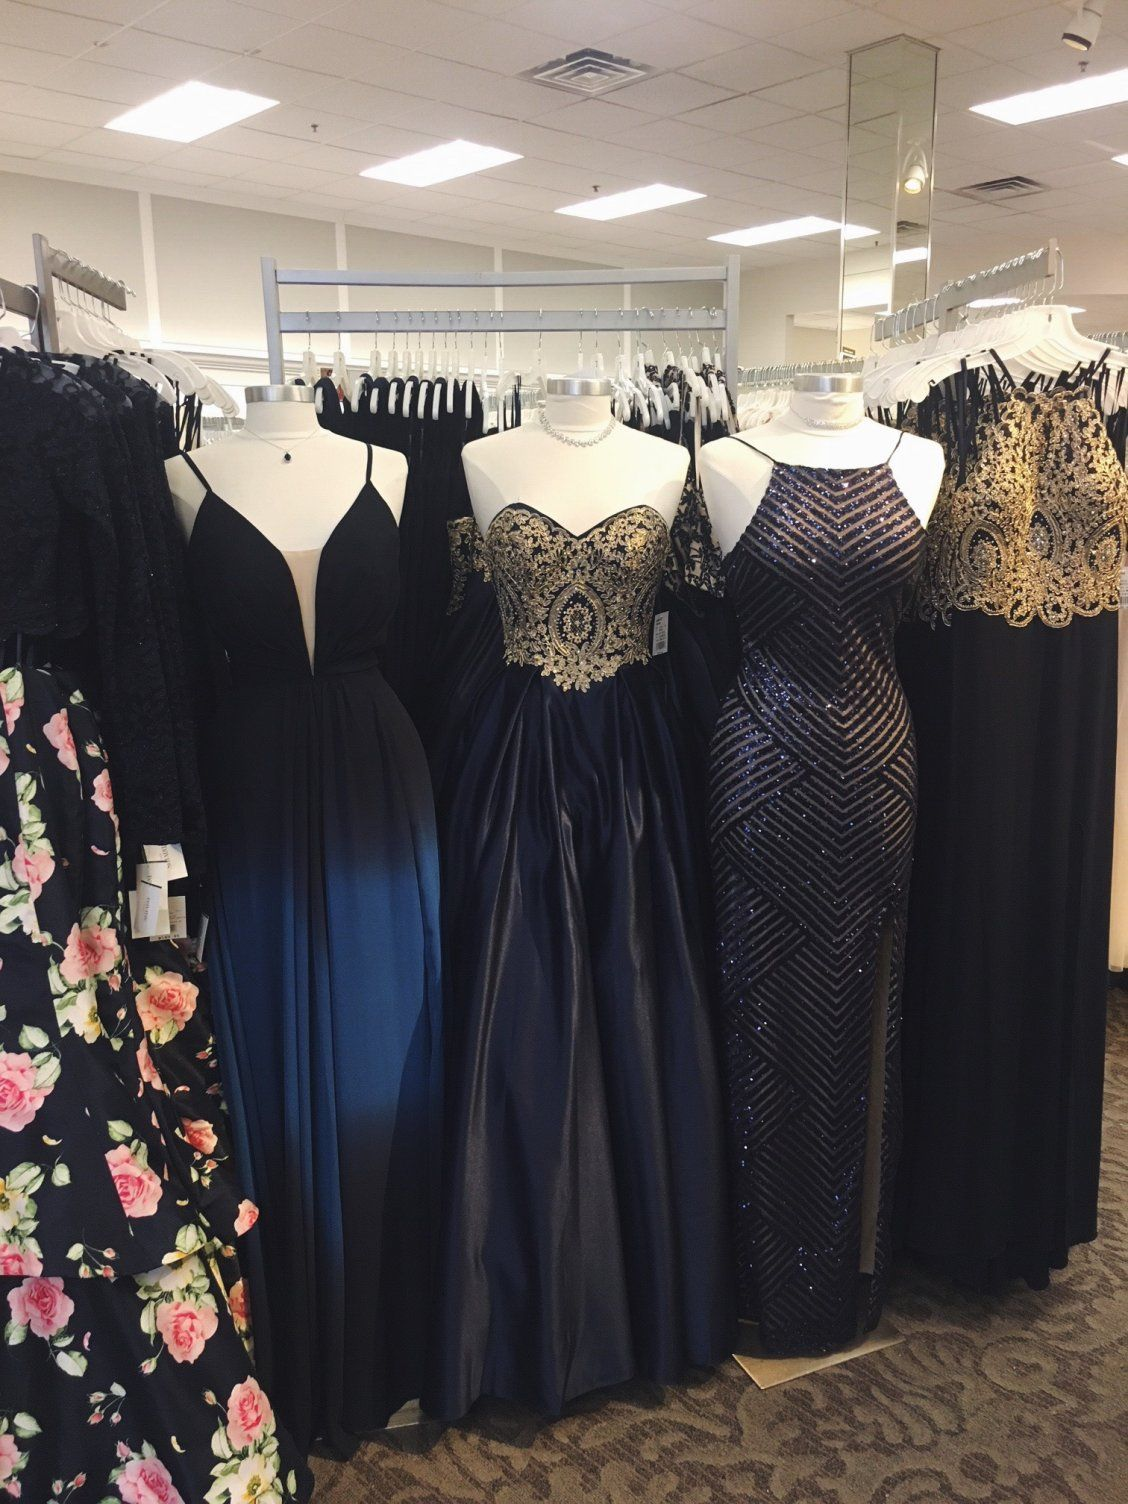 Claim your dress find the perfect prom dress for prom at